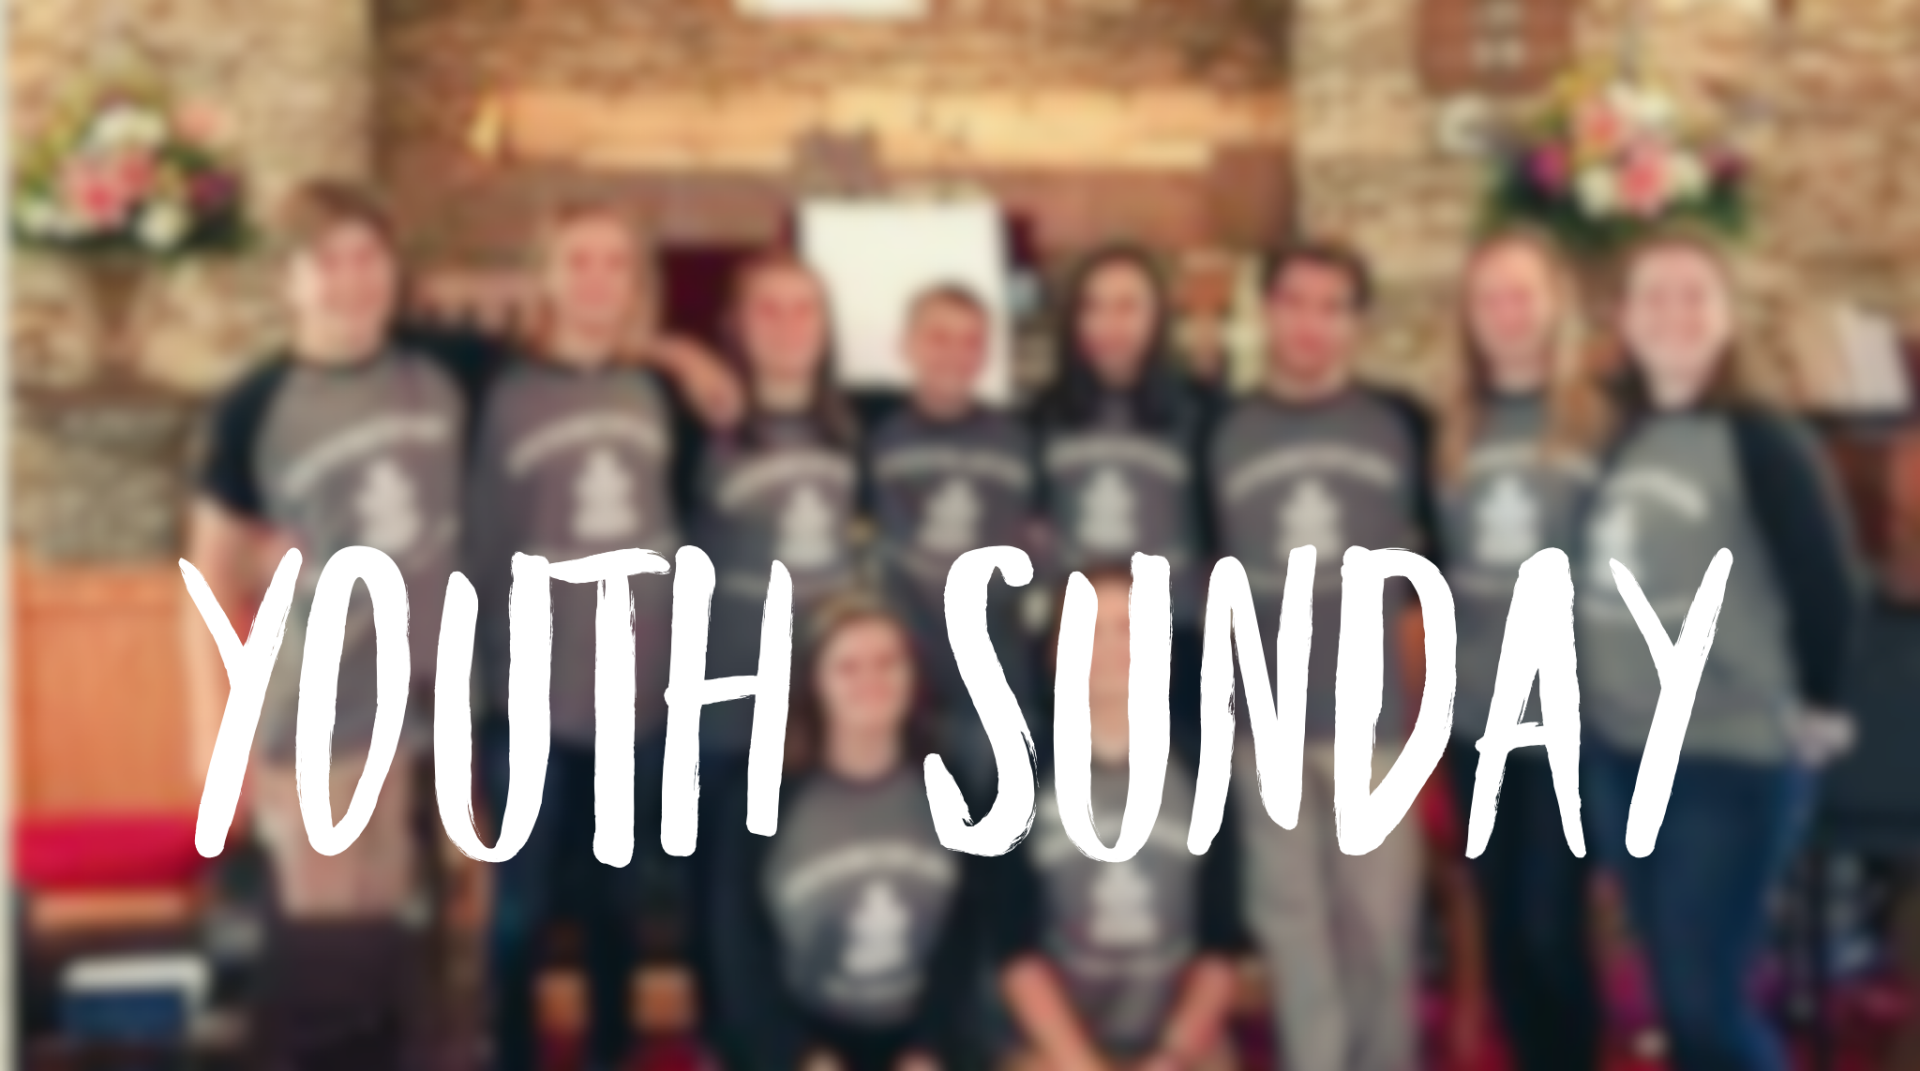 Mark your calendars! Youth Sunday is May 5th!